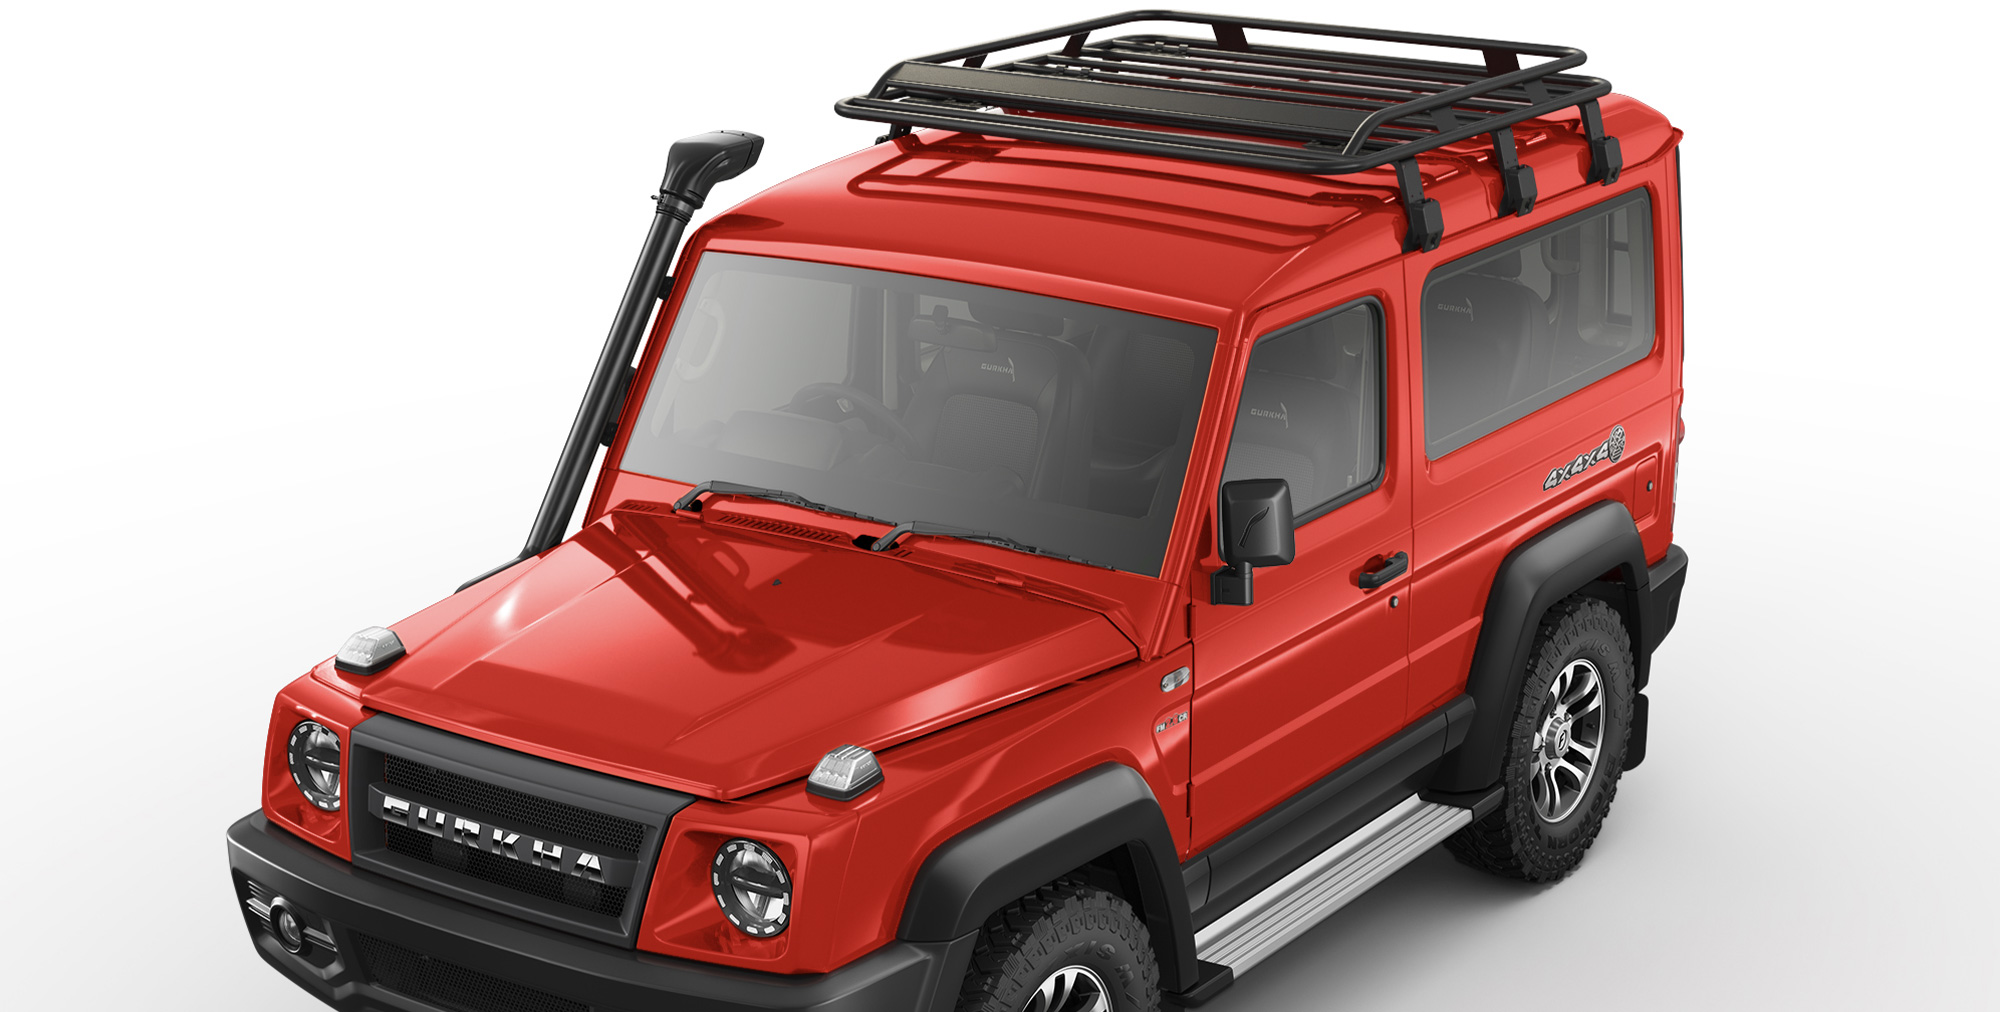 Red Colour Gurkha 4x4x4 off road car with Roof Carrier